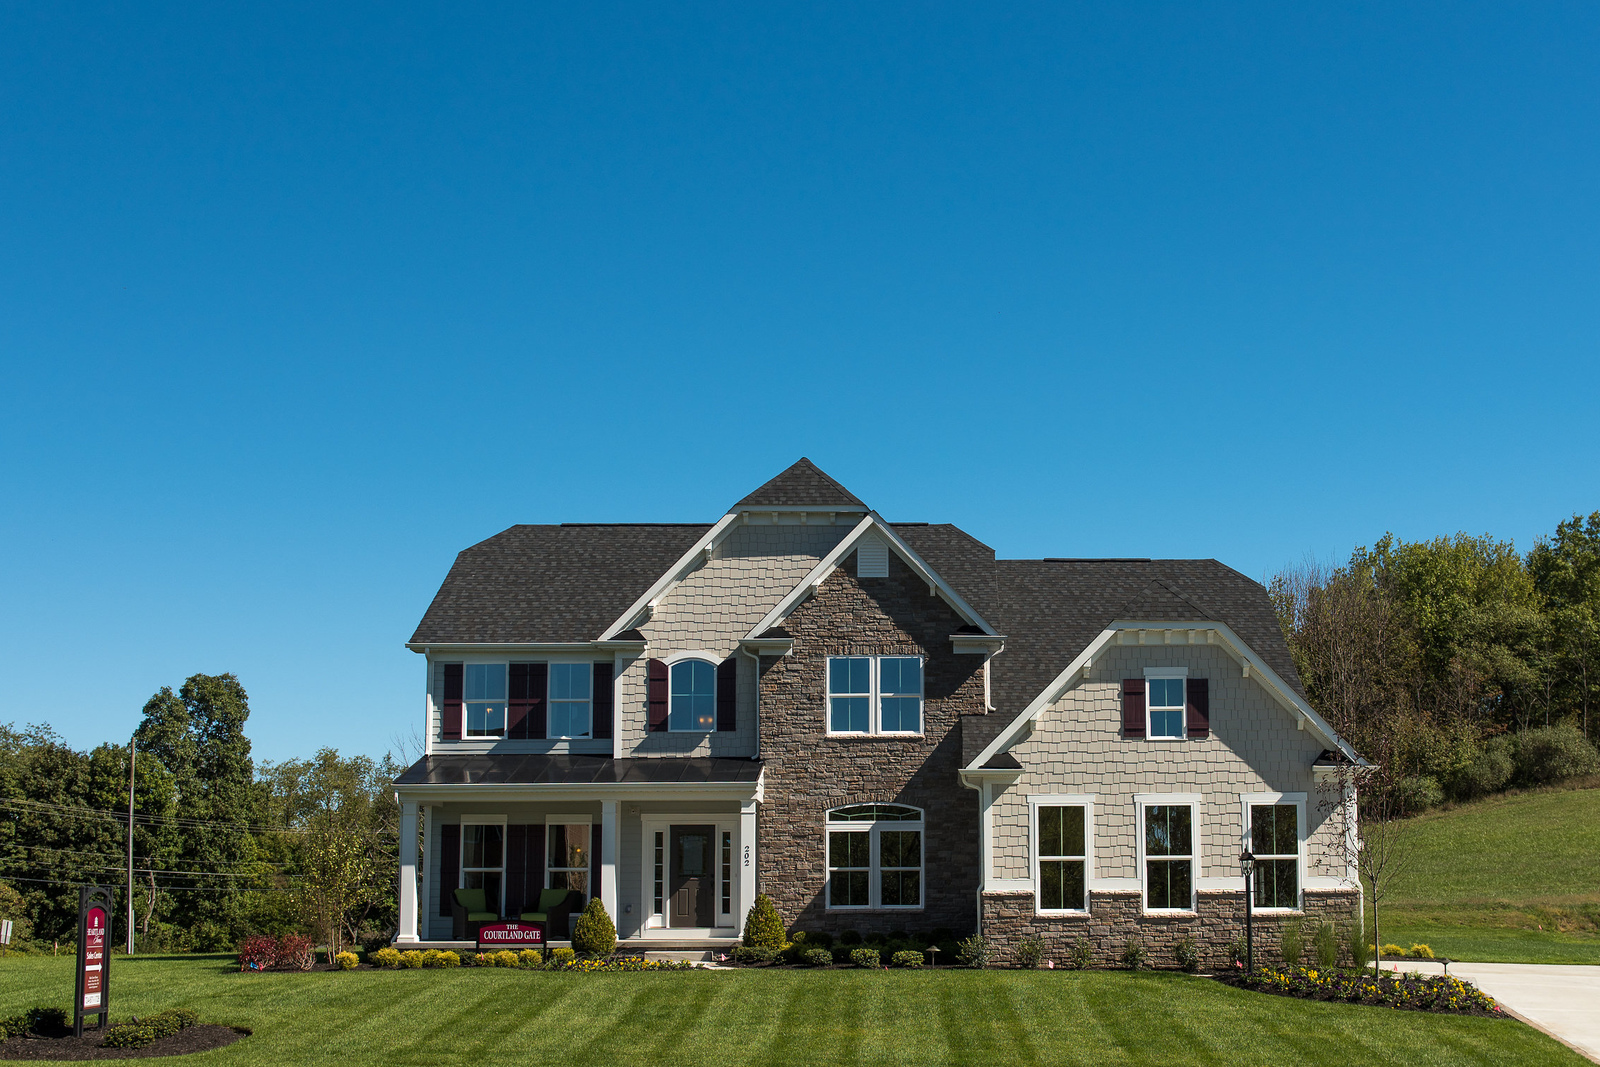 New courtland gate home model for sale heartland homes for Heartland builders